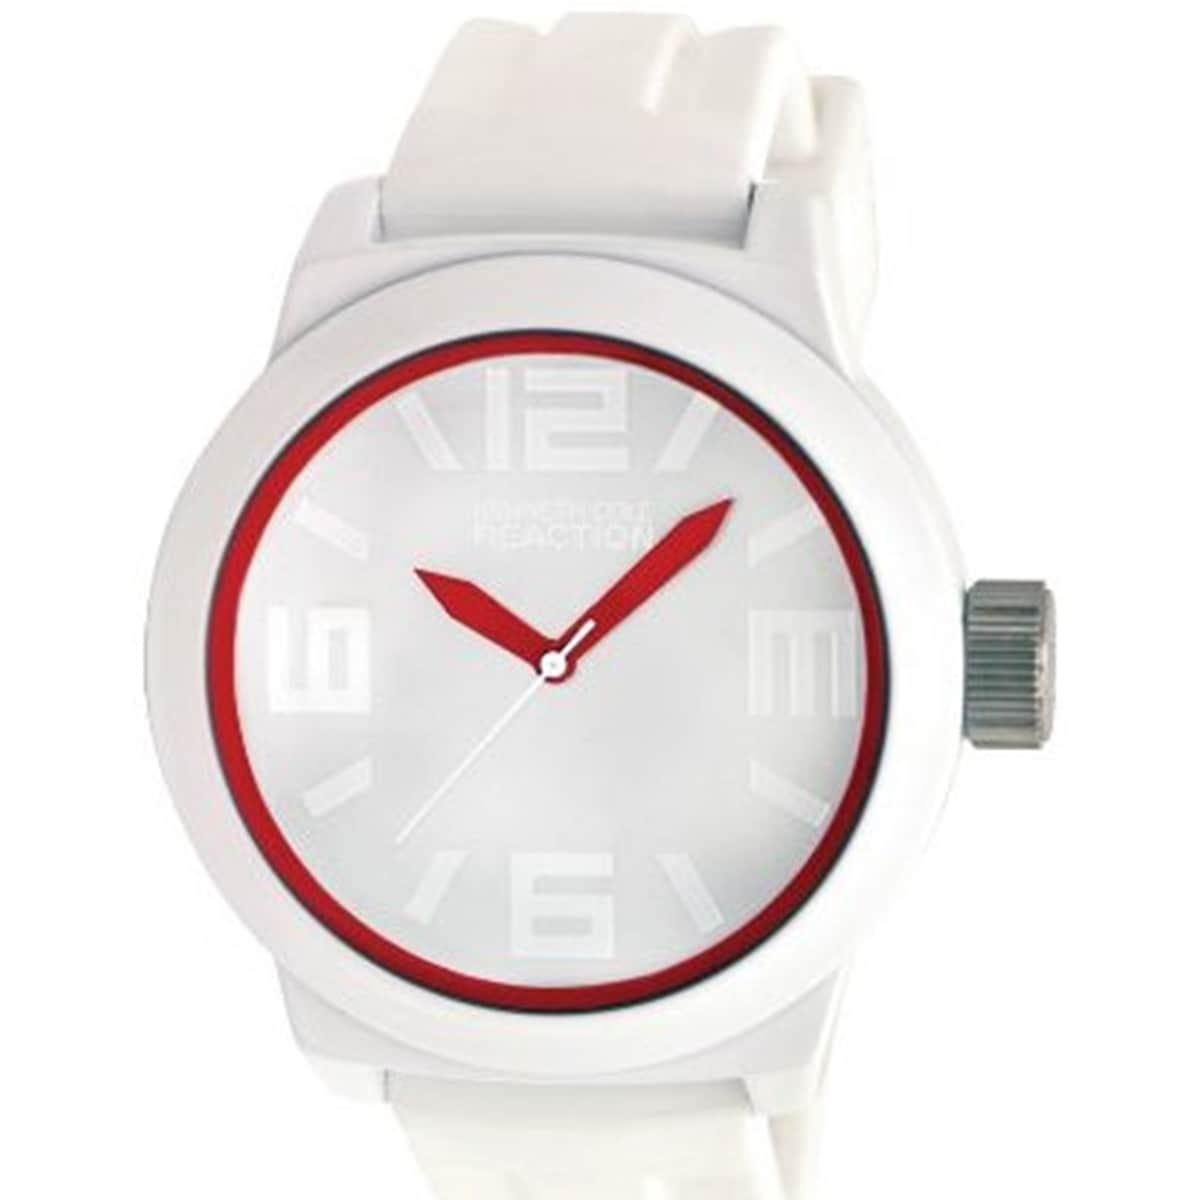 Kenneth Cole Reaction Men's Reaction RK1241 White Silicone Analog Quartz Watch with White Dial